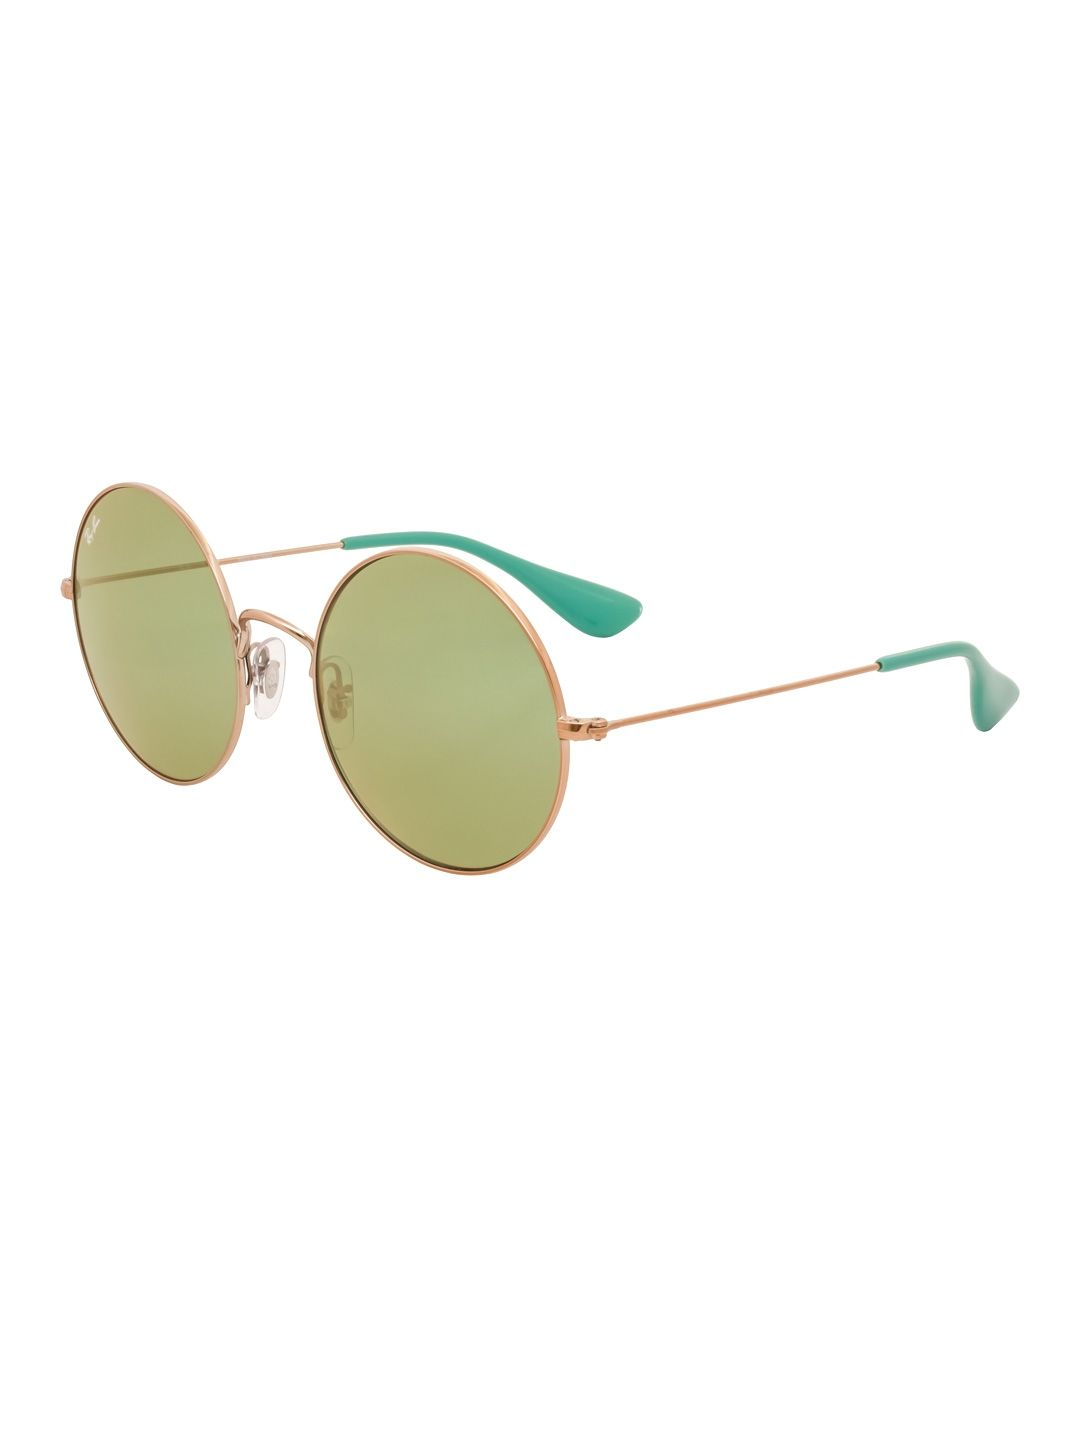 83c7fdbf943ee RAY BAN WOMEN S MIRRORED ROUND METAL FRAME - GREEN